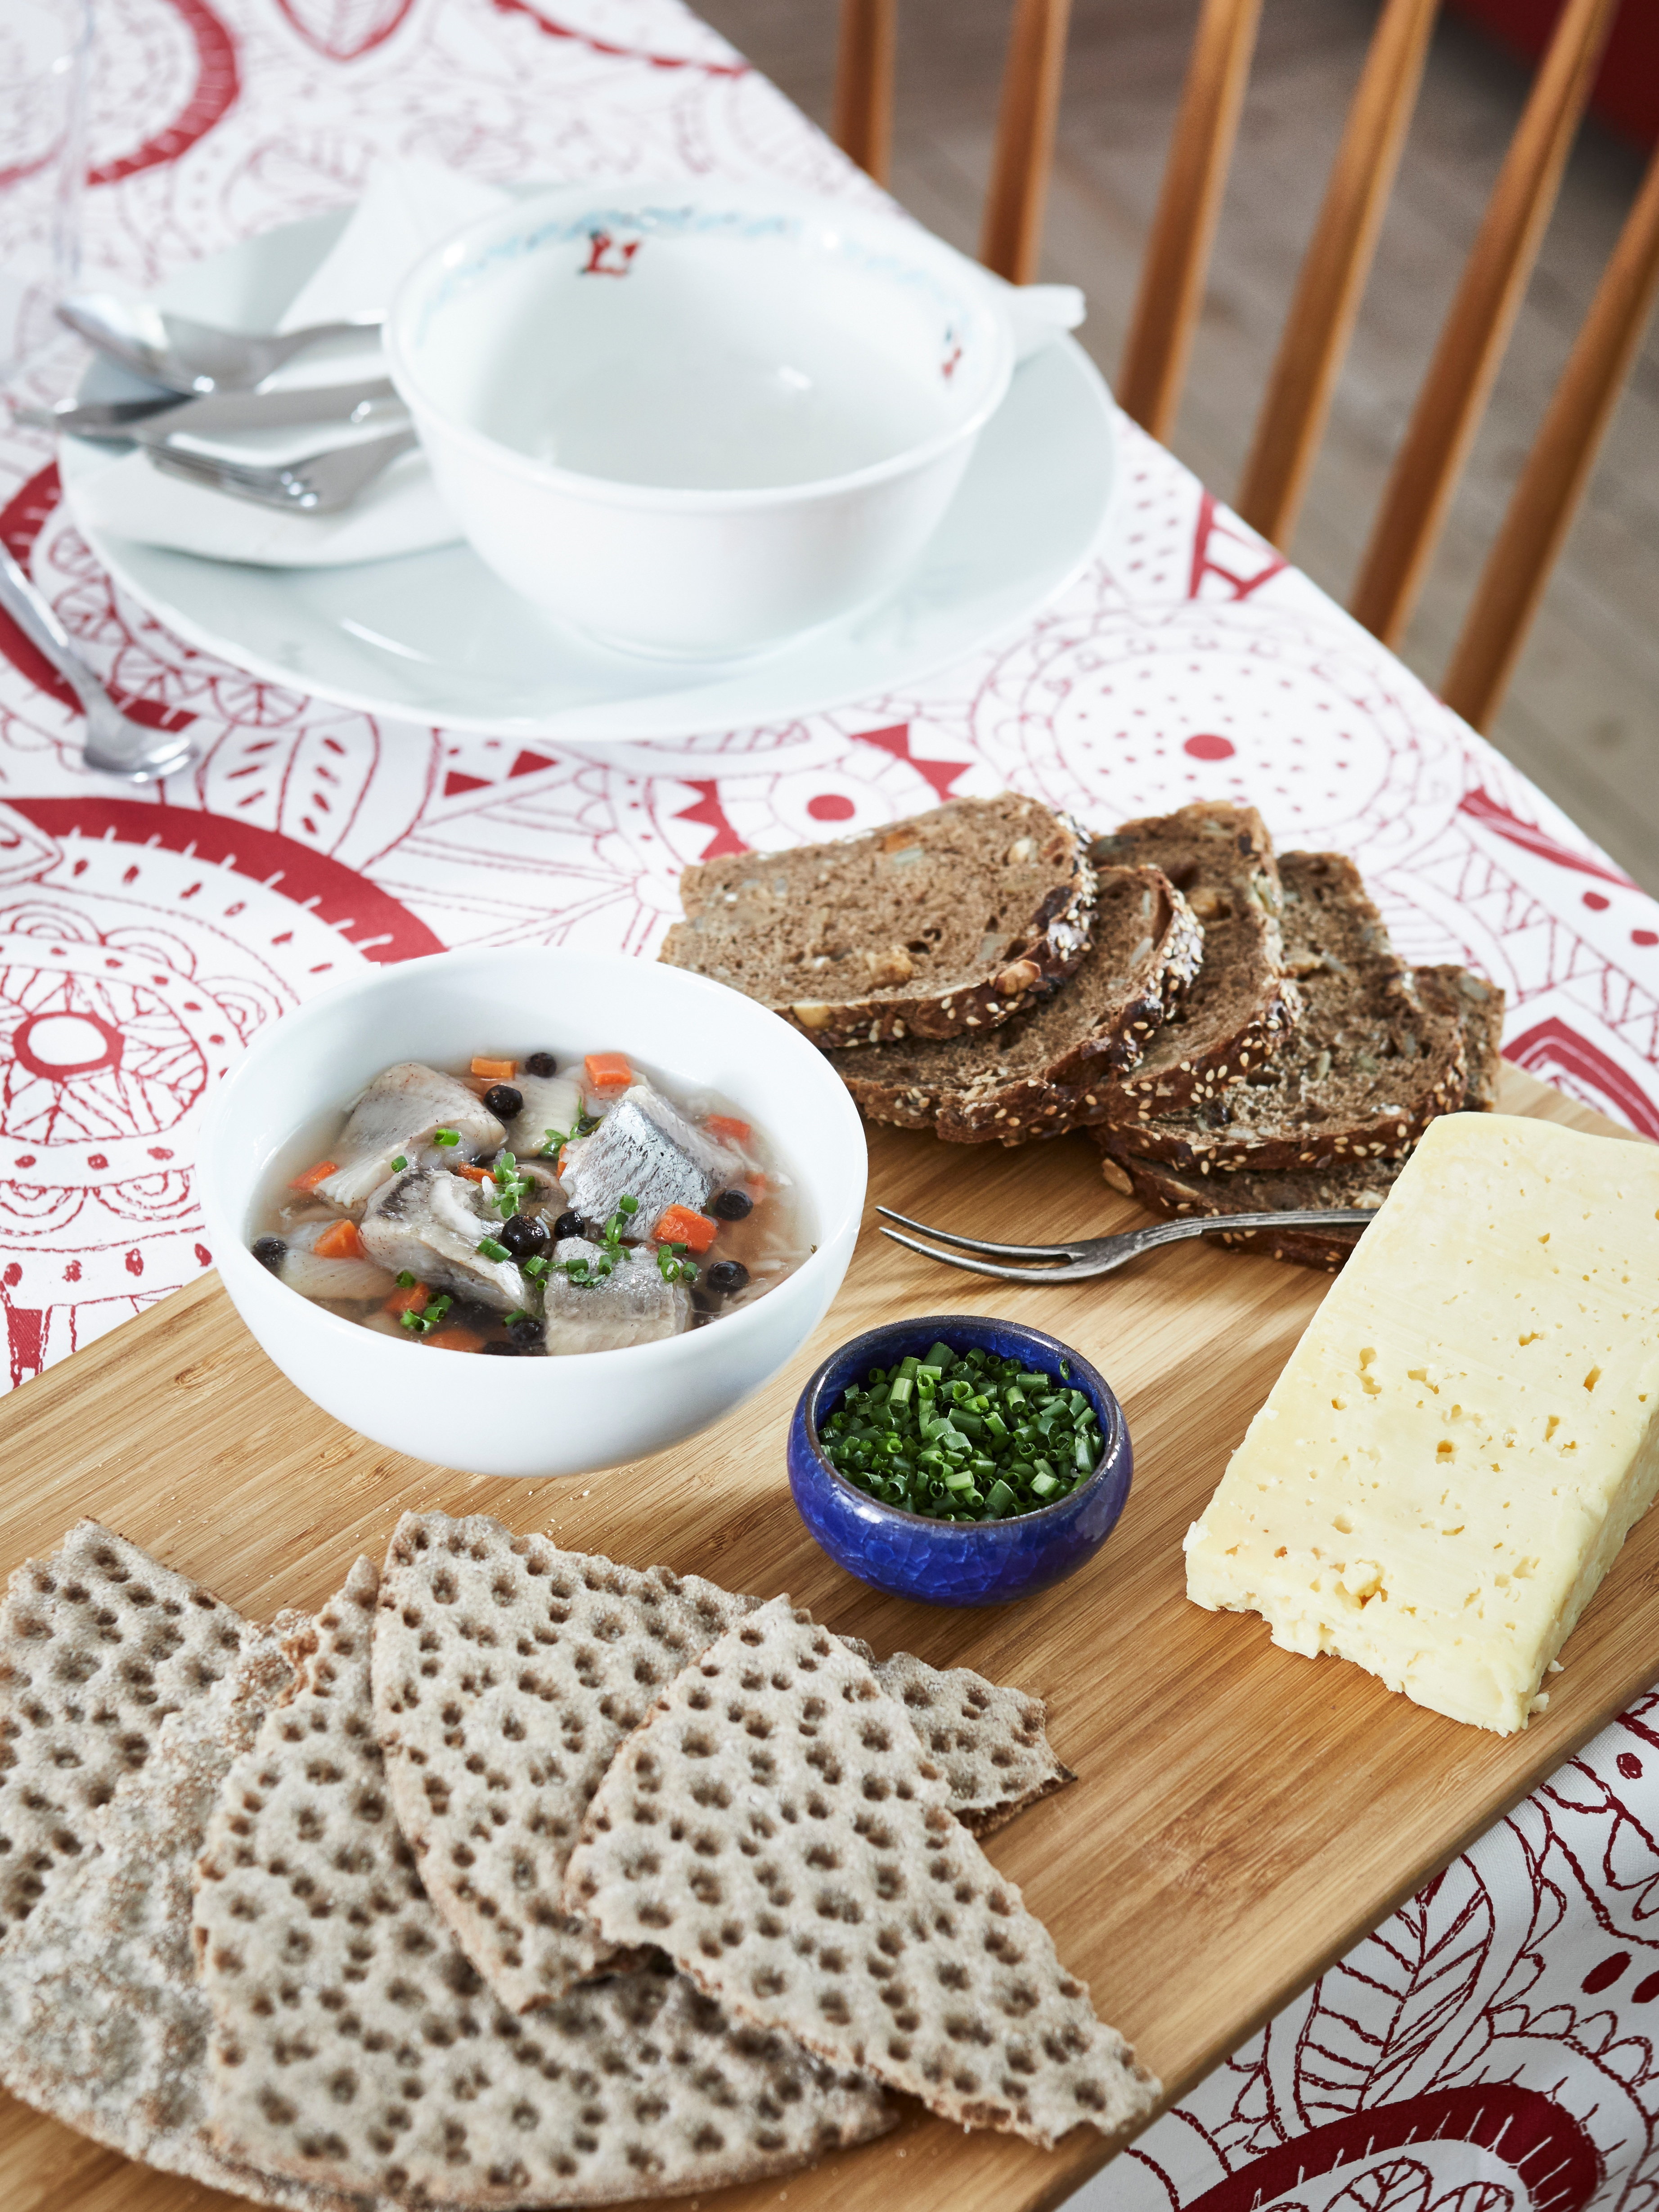 White bowl with SILL INLAGD marinated herring with onions and carrots, on a wooden board with bread, cheese and other foods.